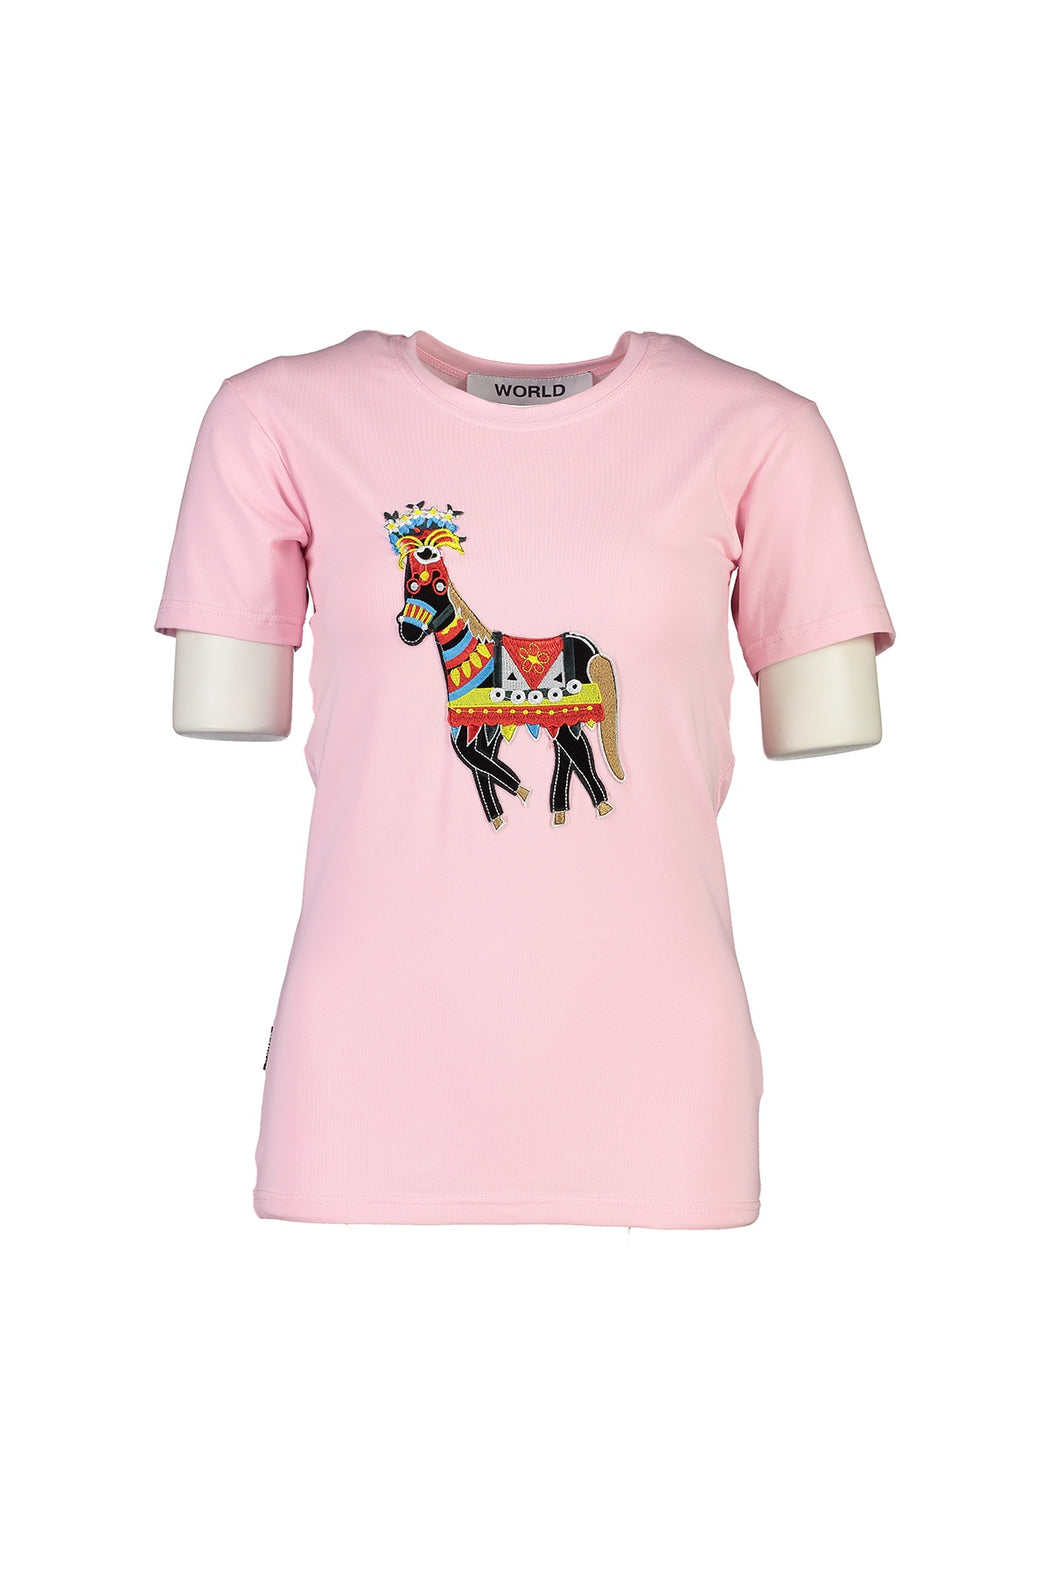 WORLD 4501 Two Wrongs T (Unisex) Pink